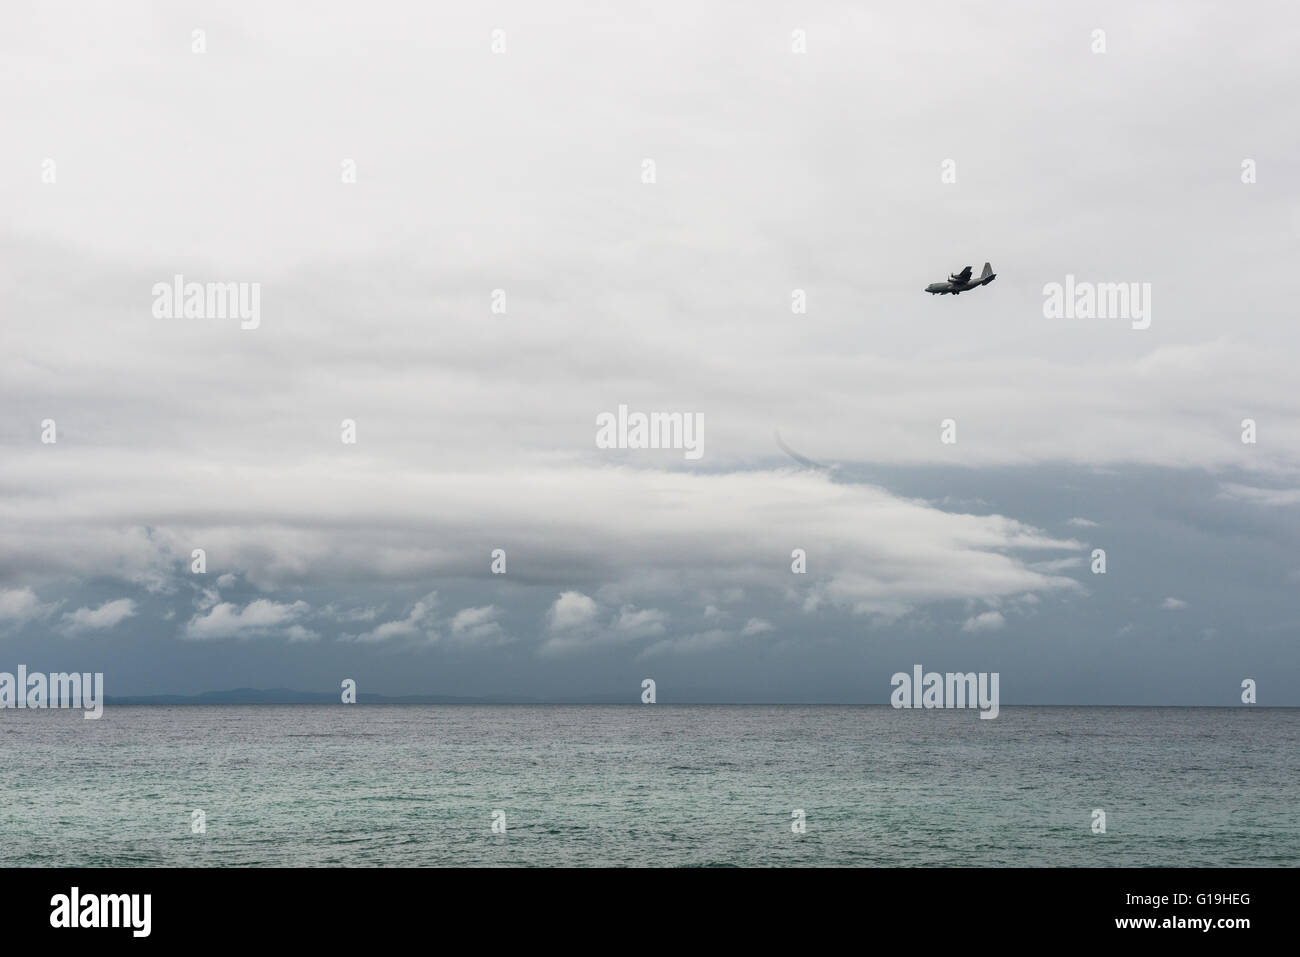 Military plane over Aegean sea at the Lesbos island coast near Mytilene on a stormy day Stock Photo